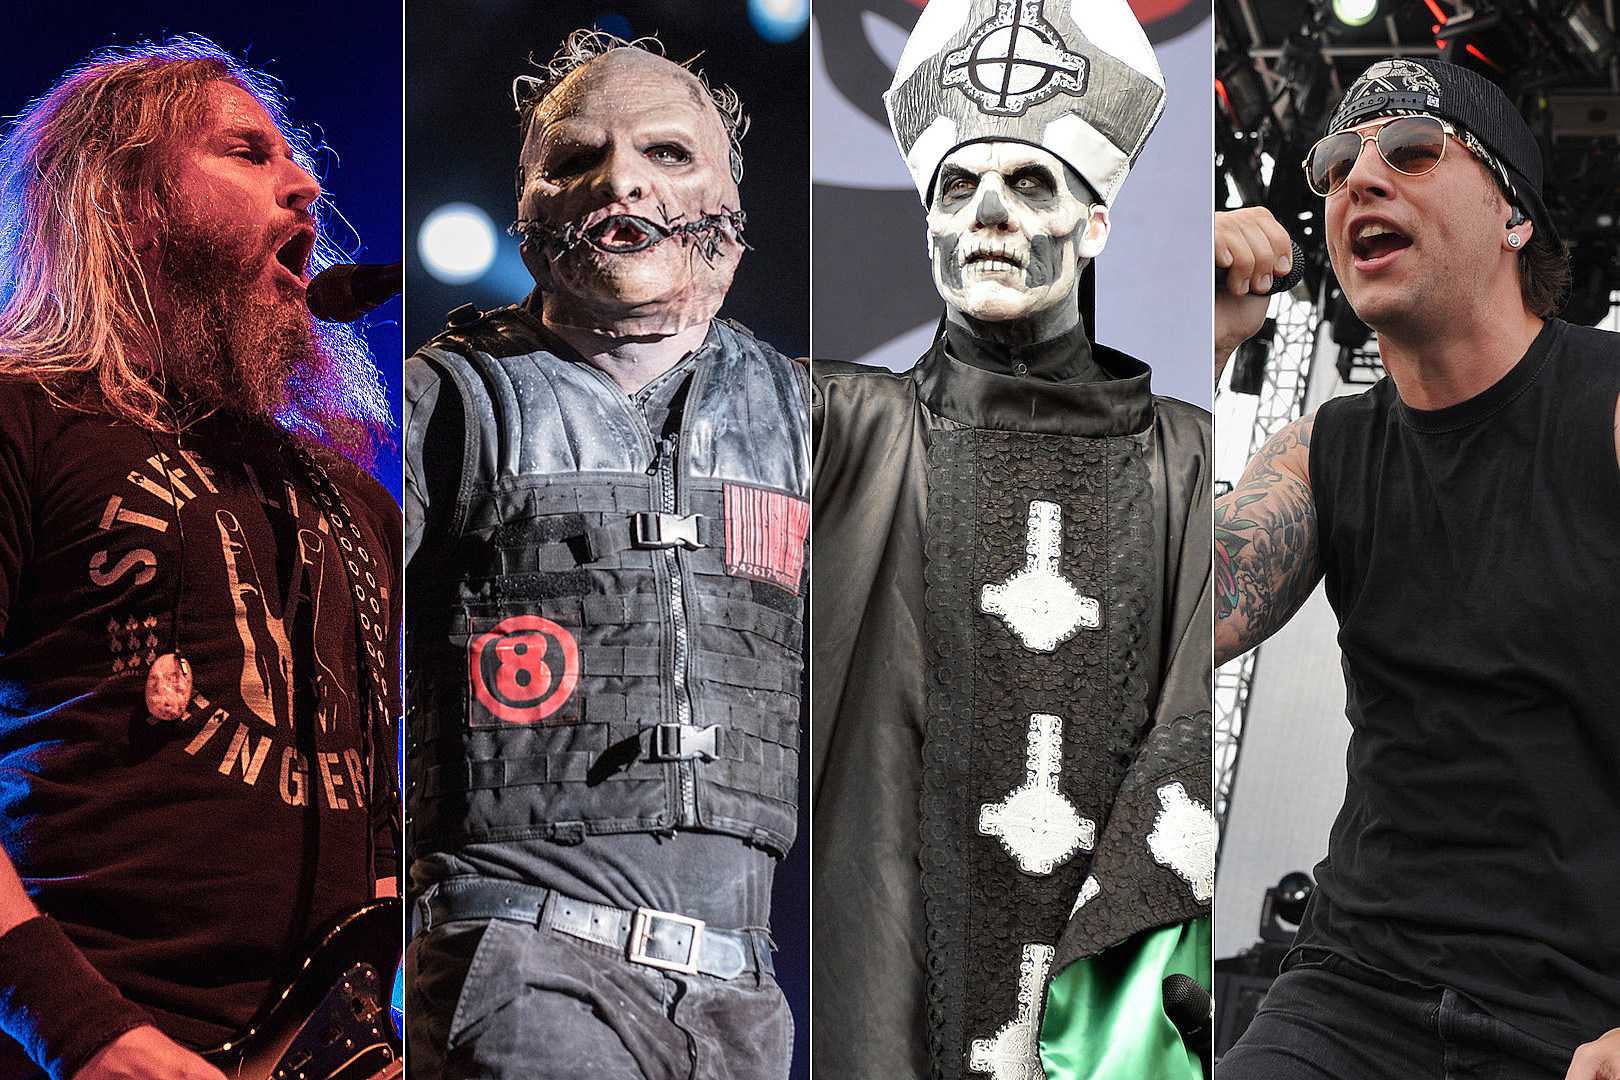 Johnny Perilla, Loudwire / Raphael Dias, Getty Images / Theo Wargo, Getty Images (2)